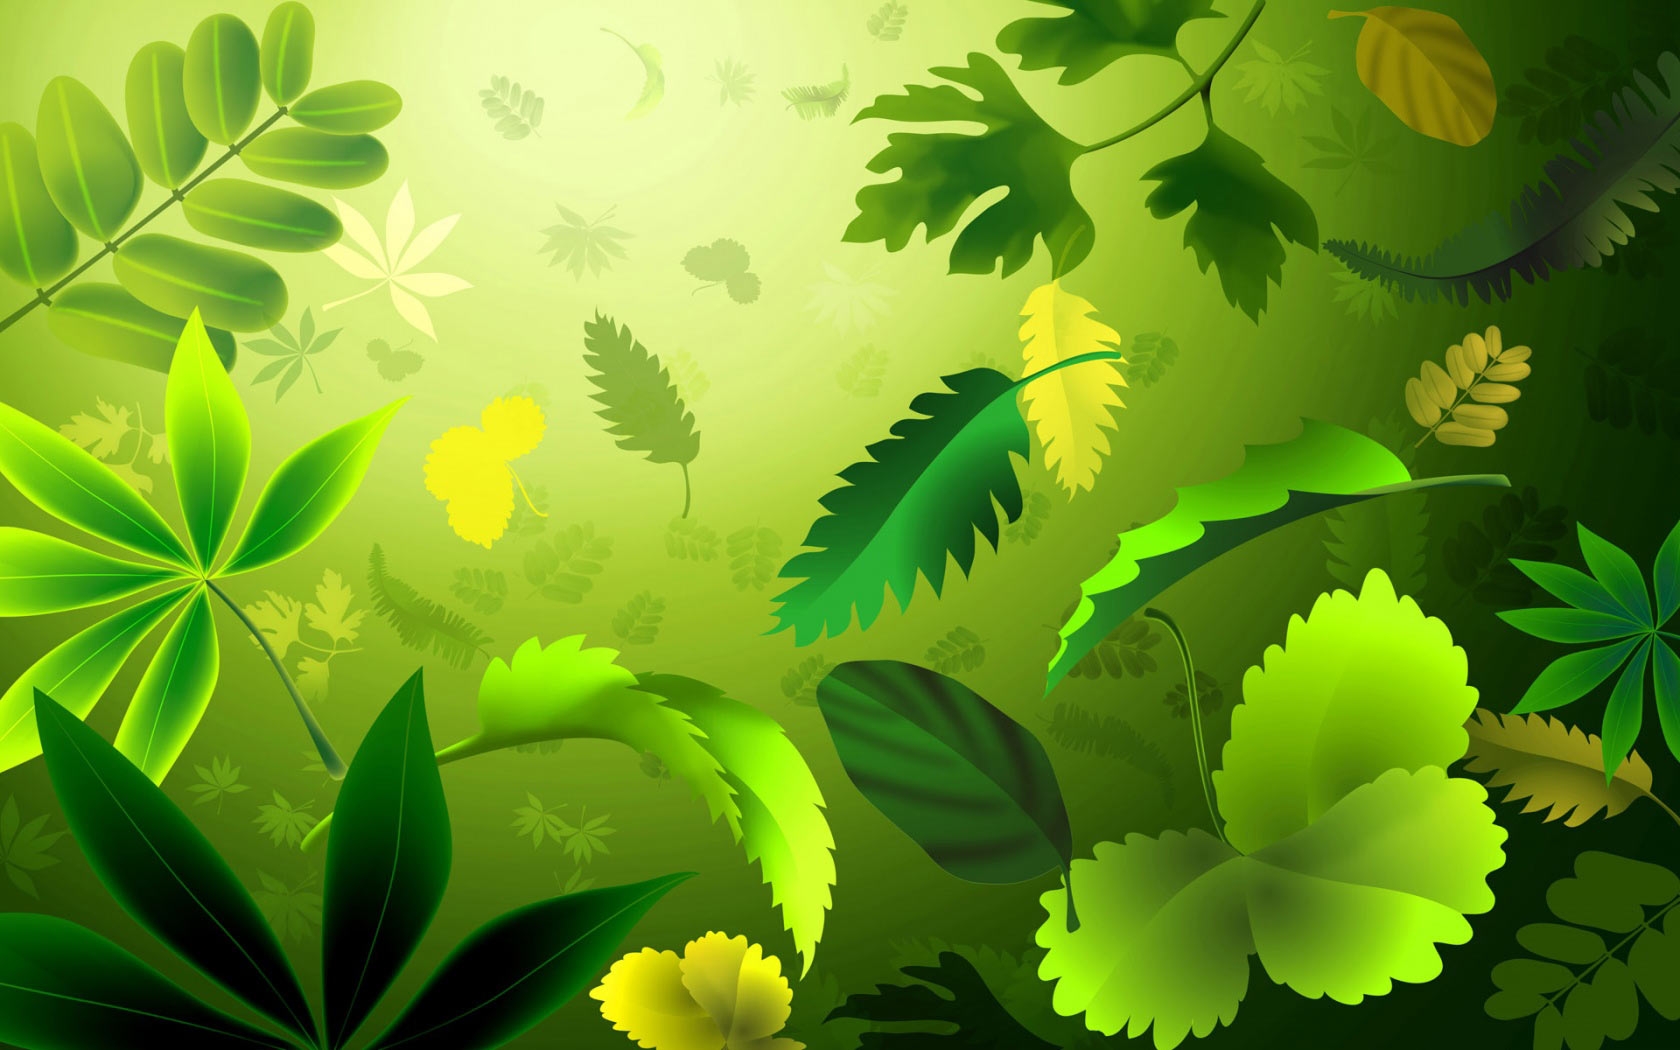 Photoshop background nature clipart.